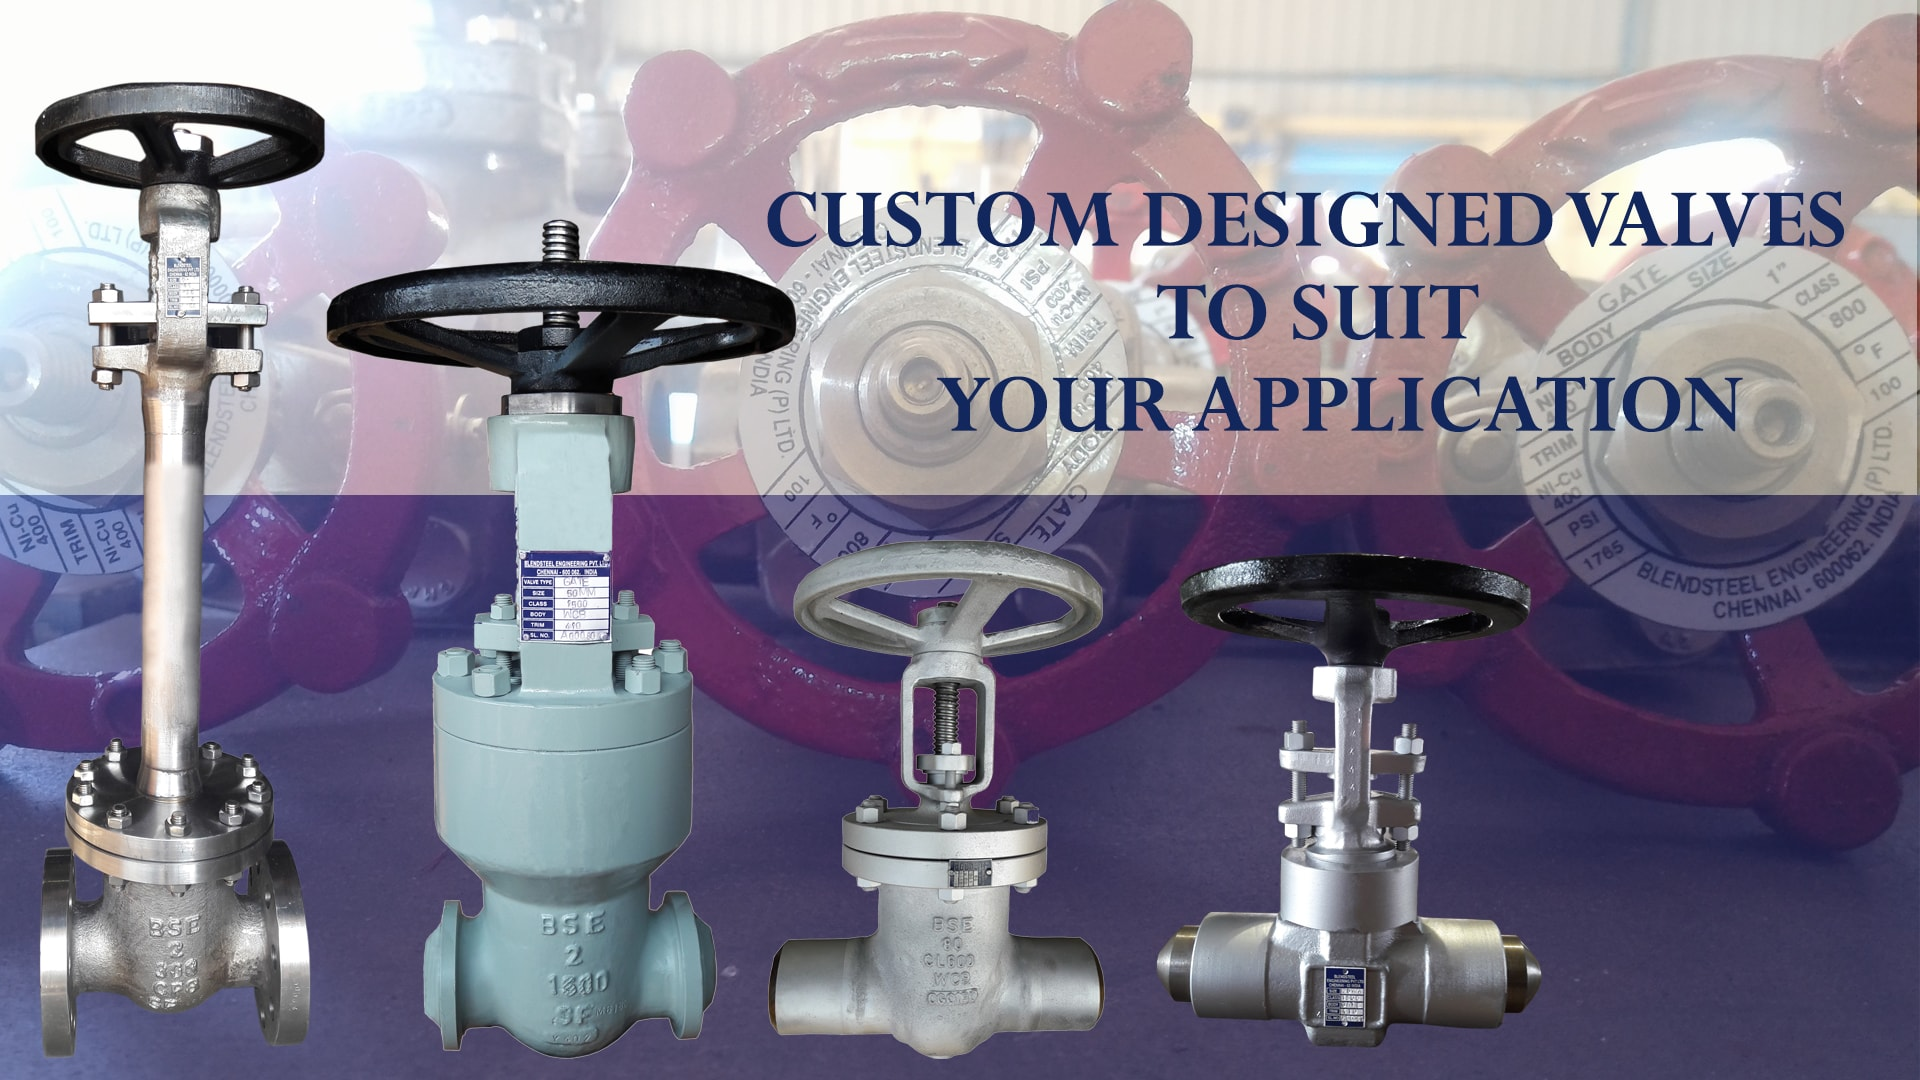 Custom designed valves to suit your application